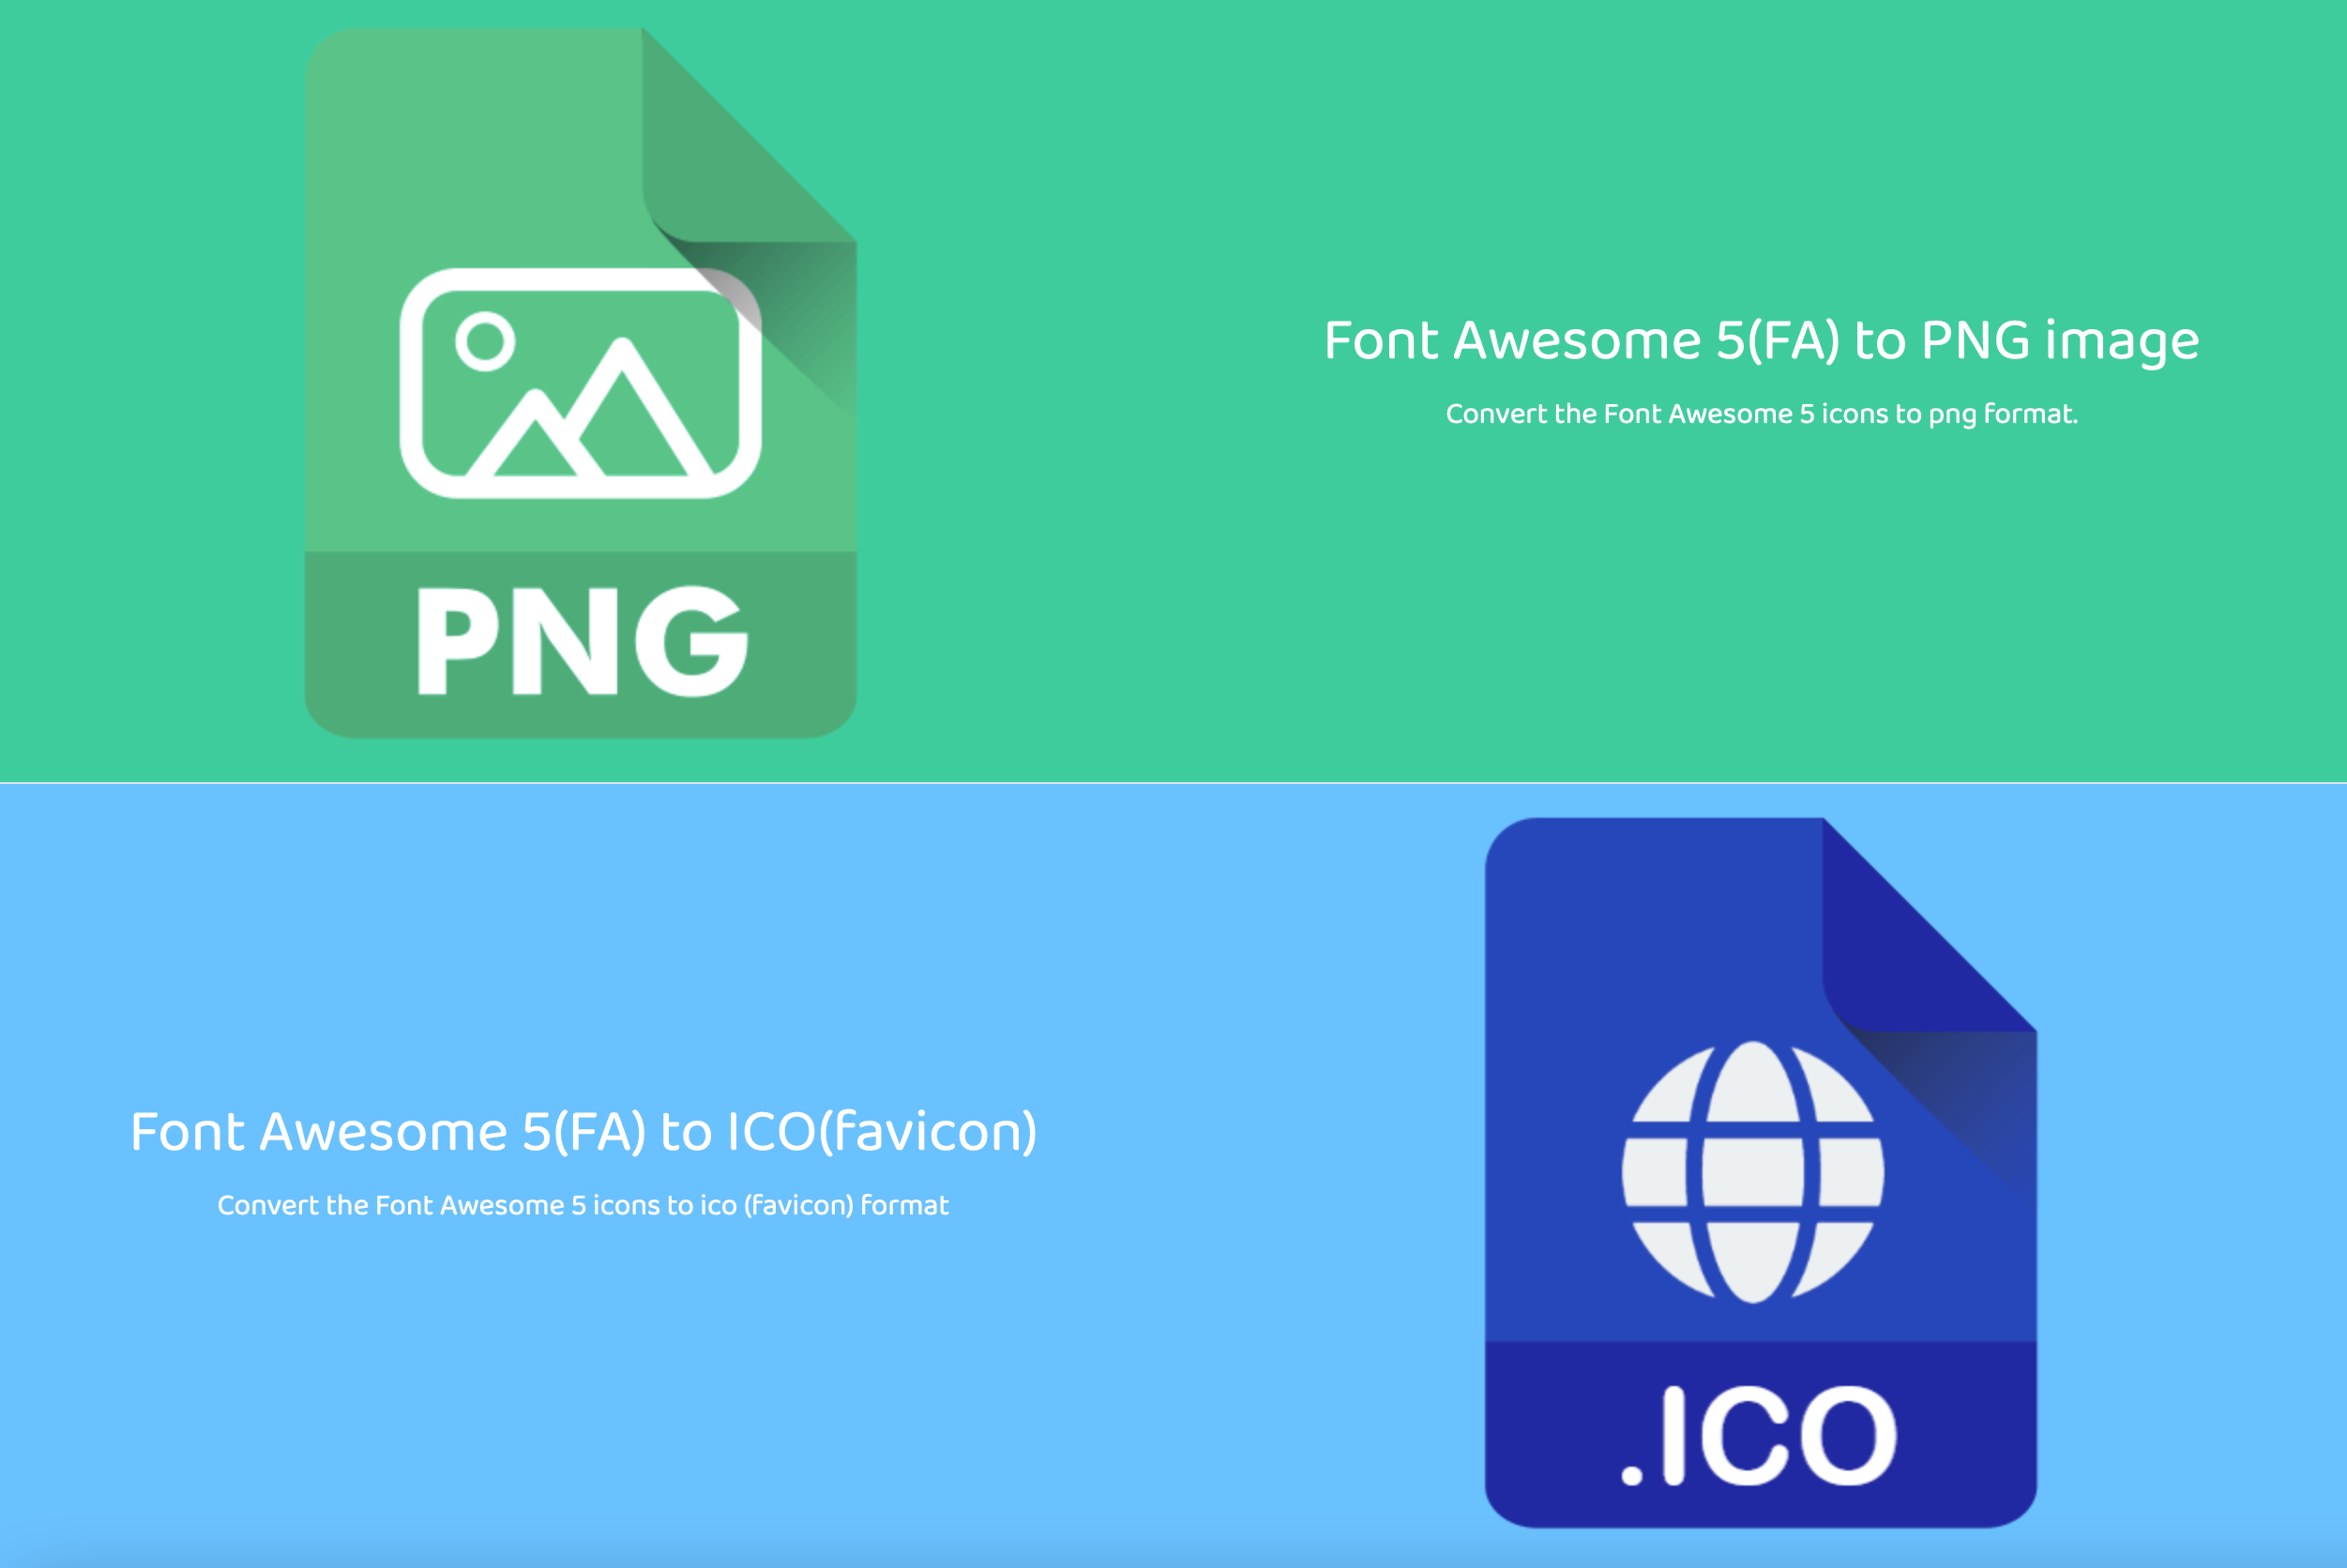 Font Awesome to image converter